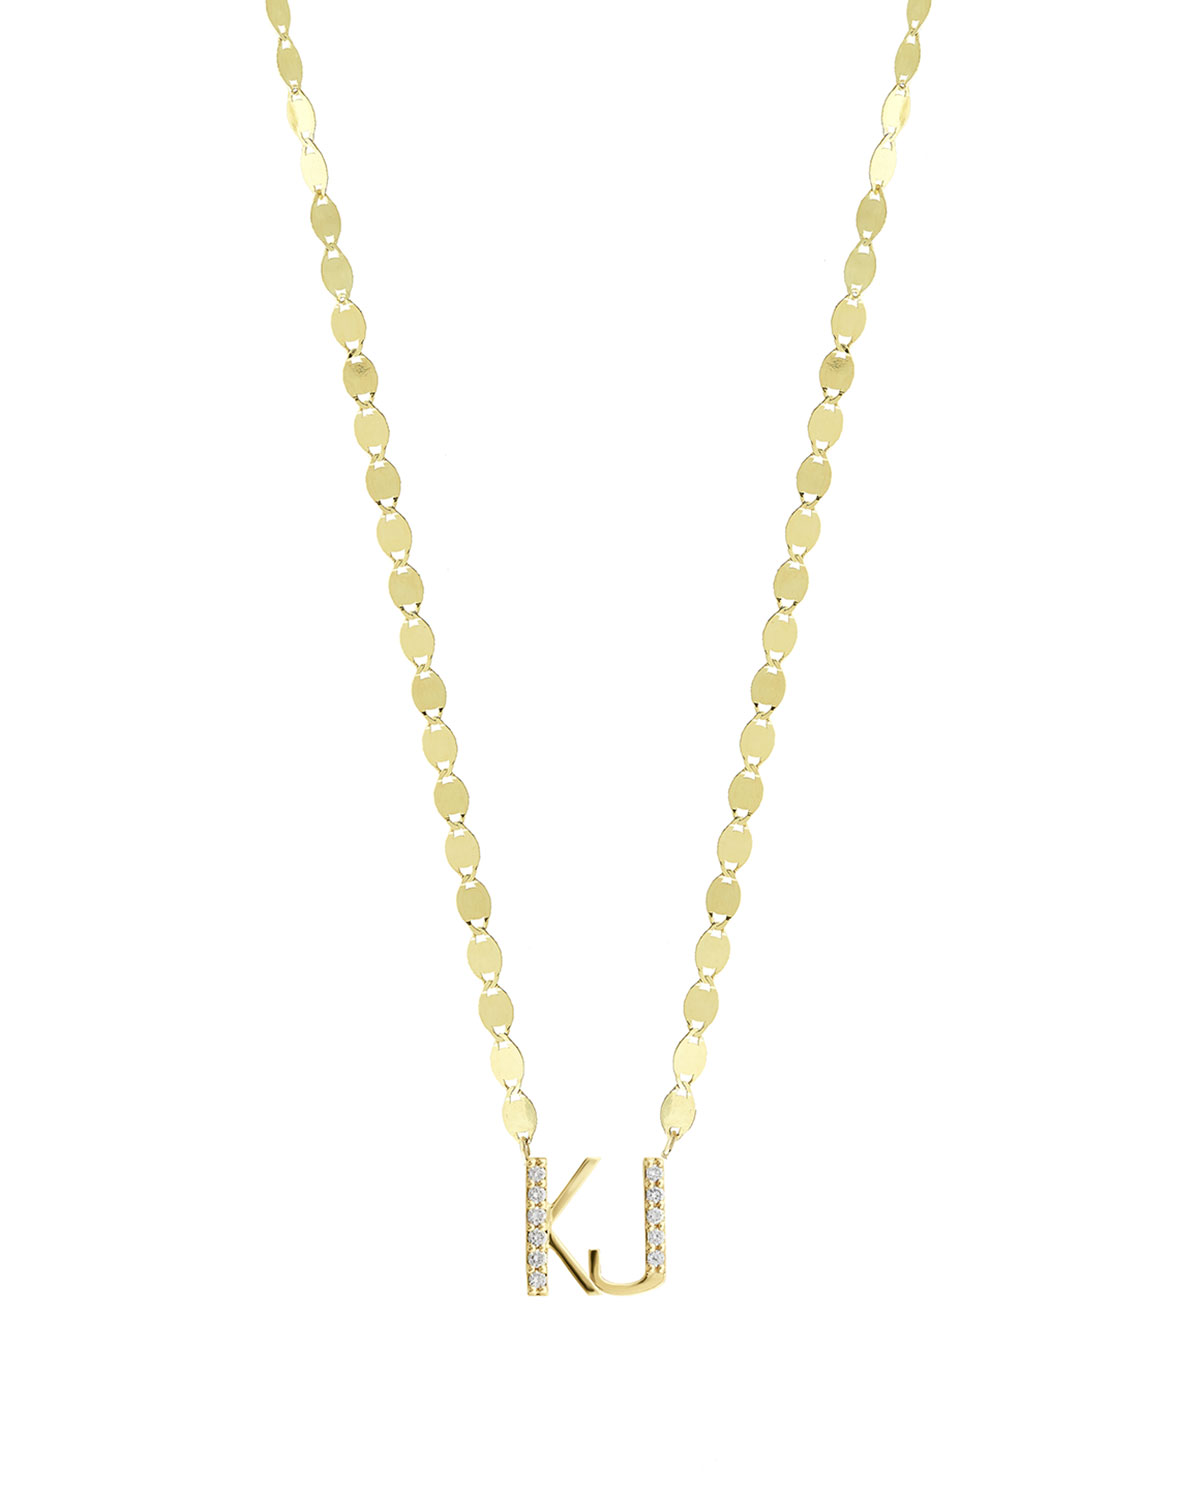 Lana Gold Personalized Two-Letter Pendant Necklace w/ Diamonds